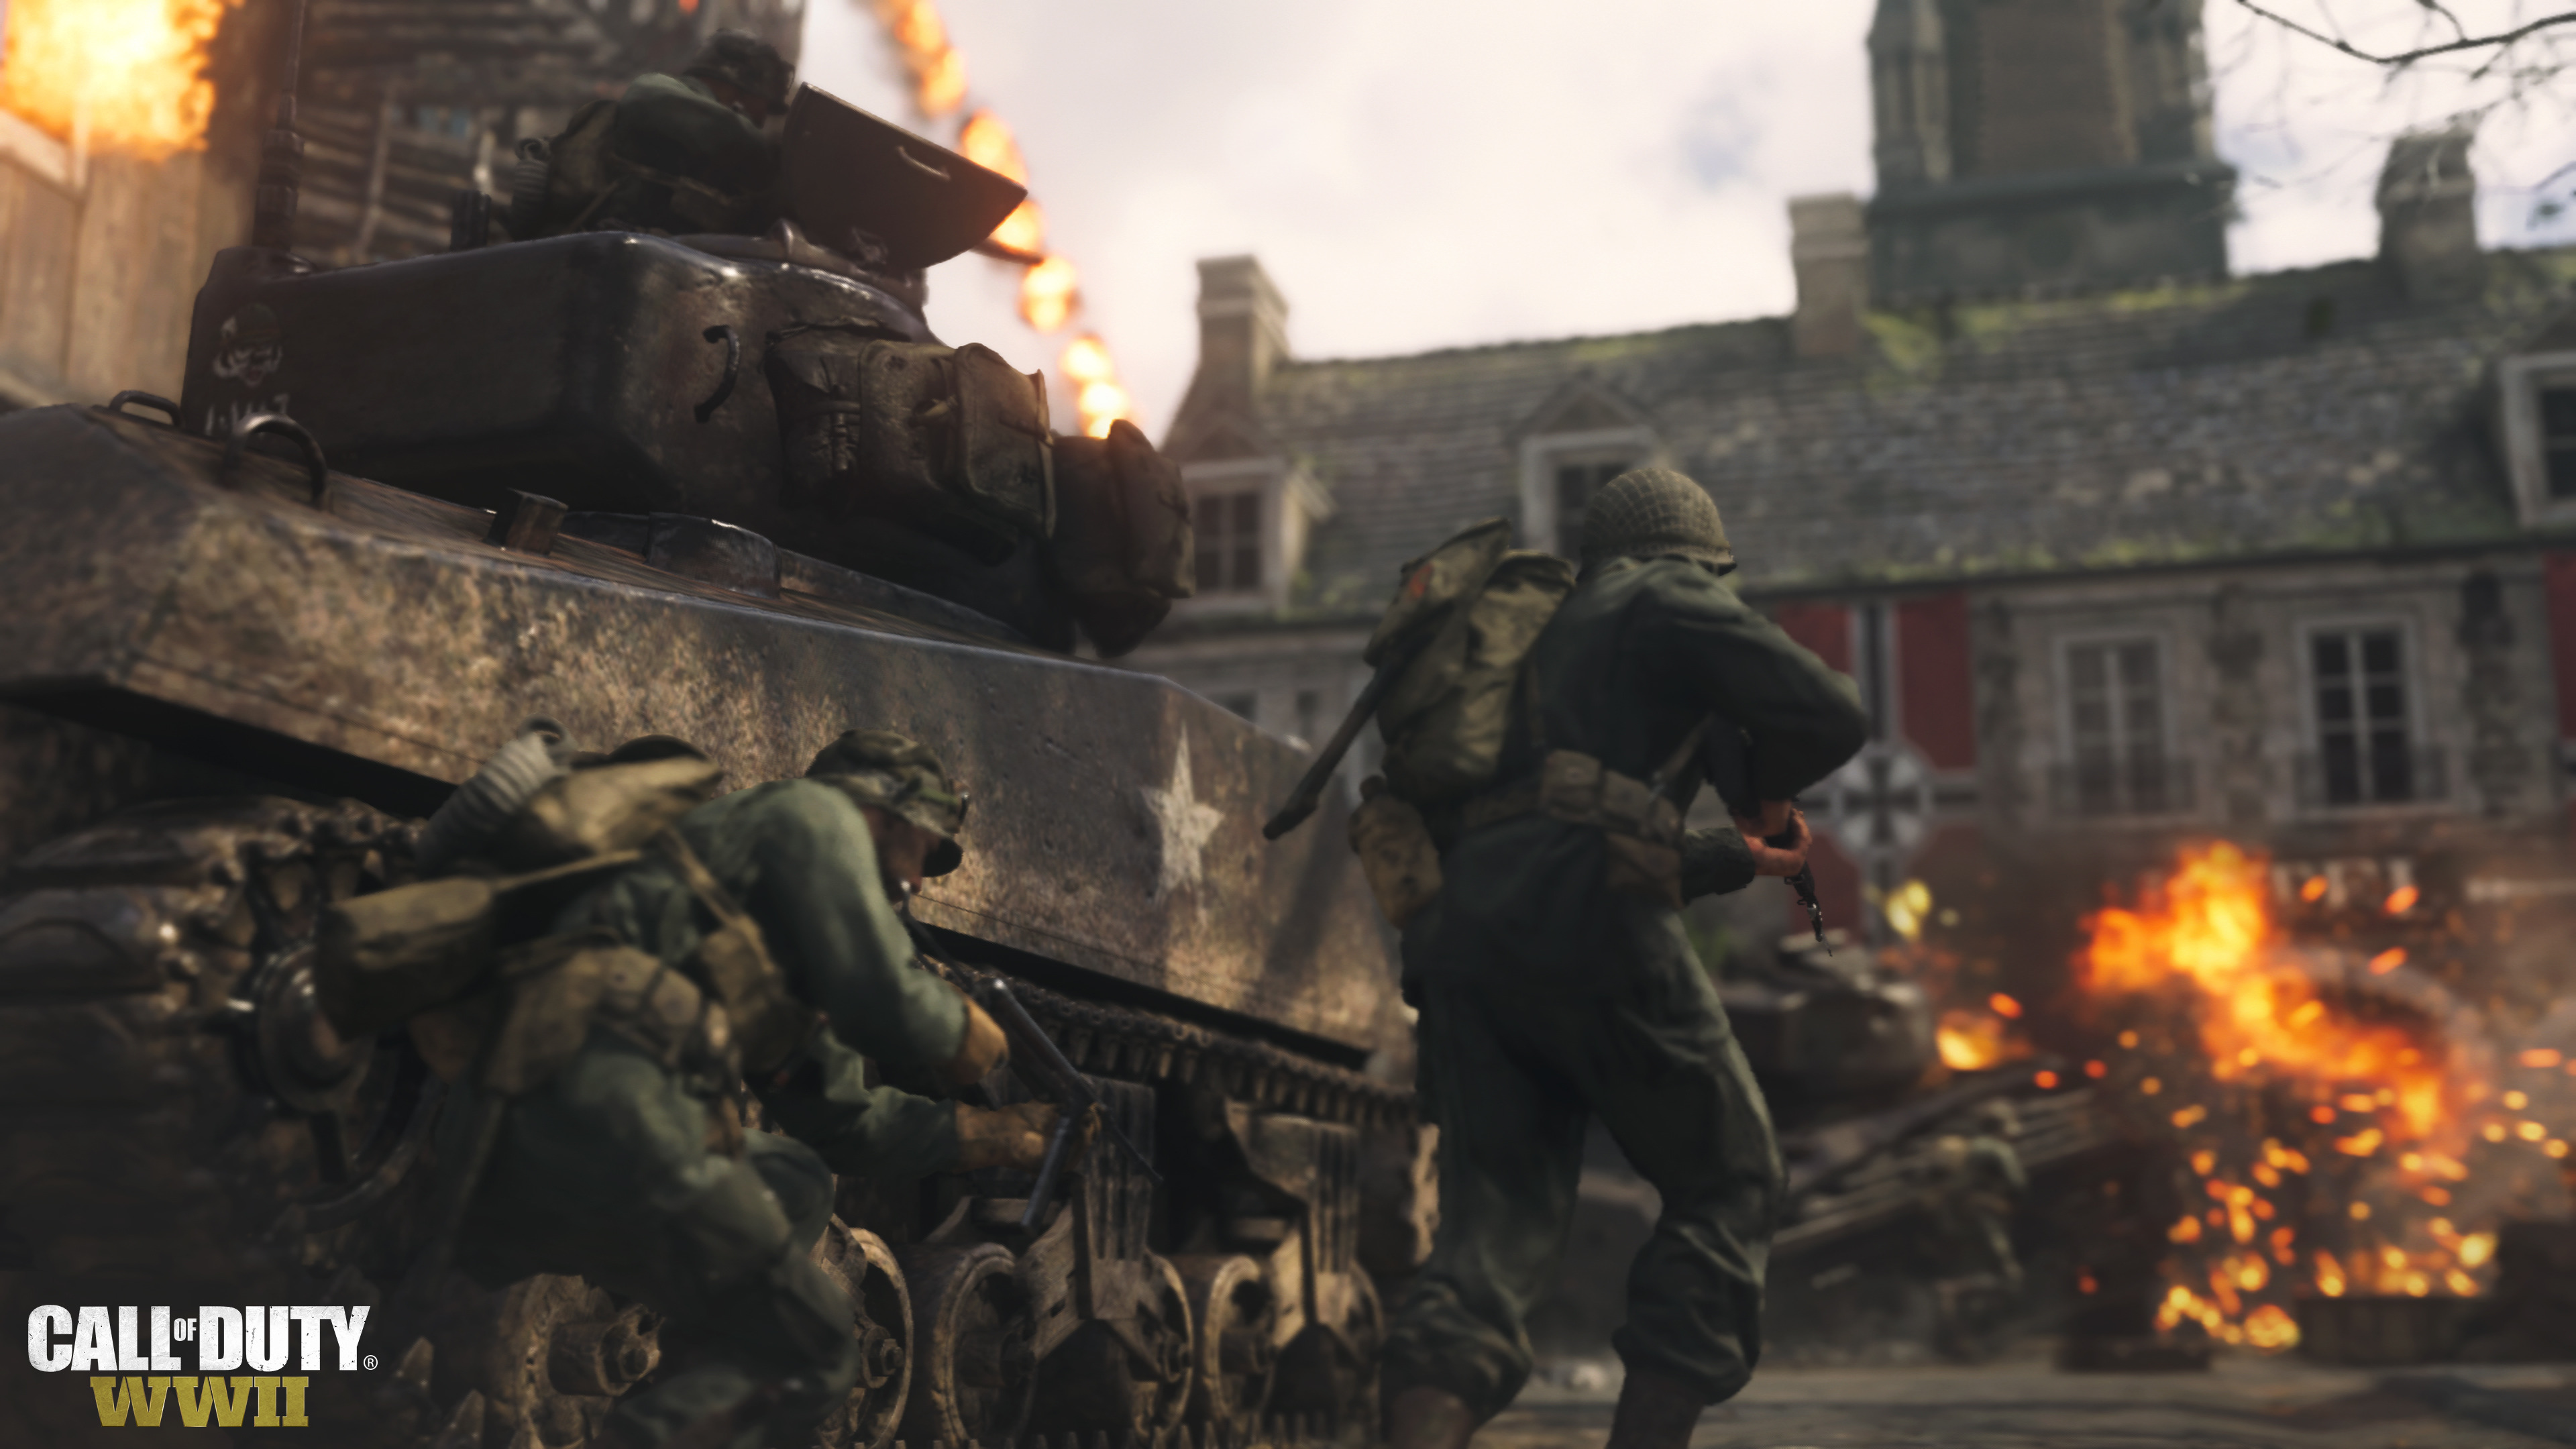 Call Of Duty Ww2 War Hd Games 4k Wallpapers Images Backgrounds